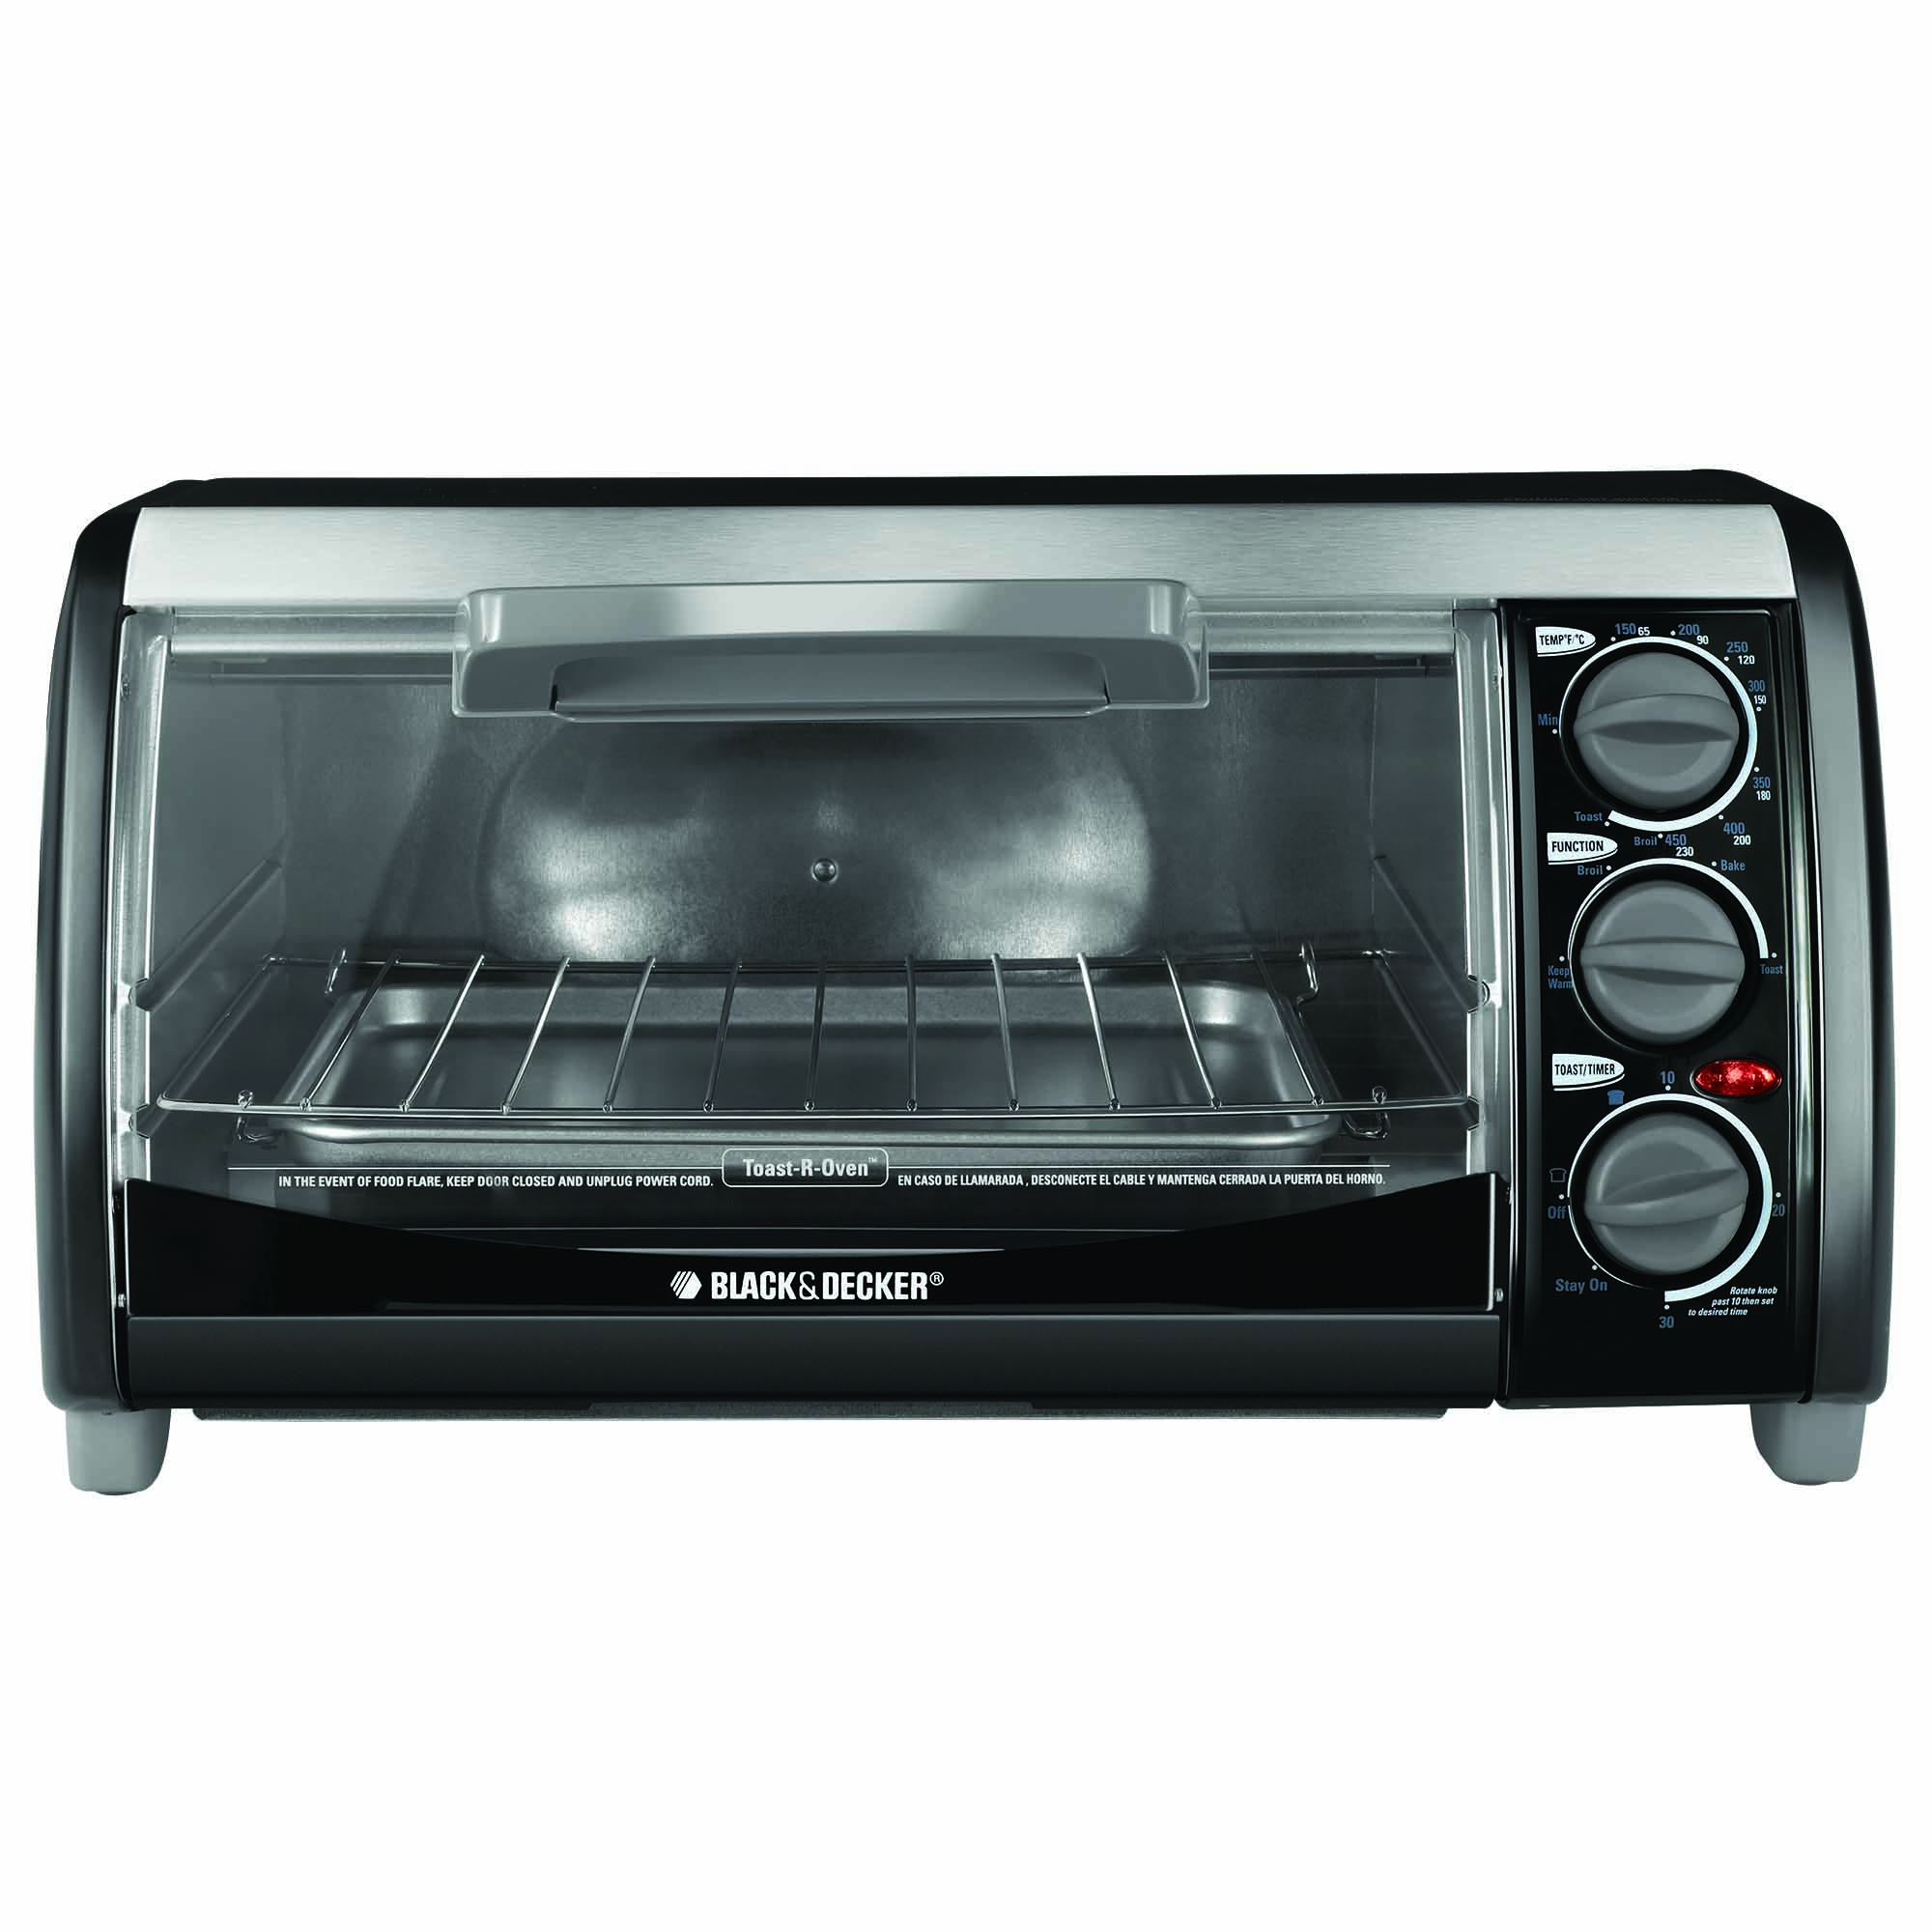 buy a black decker toaster oven counter top toaster oven tro490b rh blackanddeckerappliances com black and decker convection toaster oven instruction manual black & decker toaster oven user manual